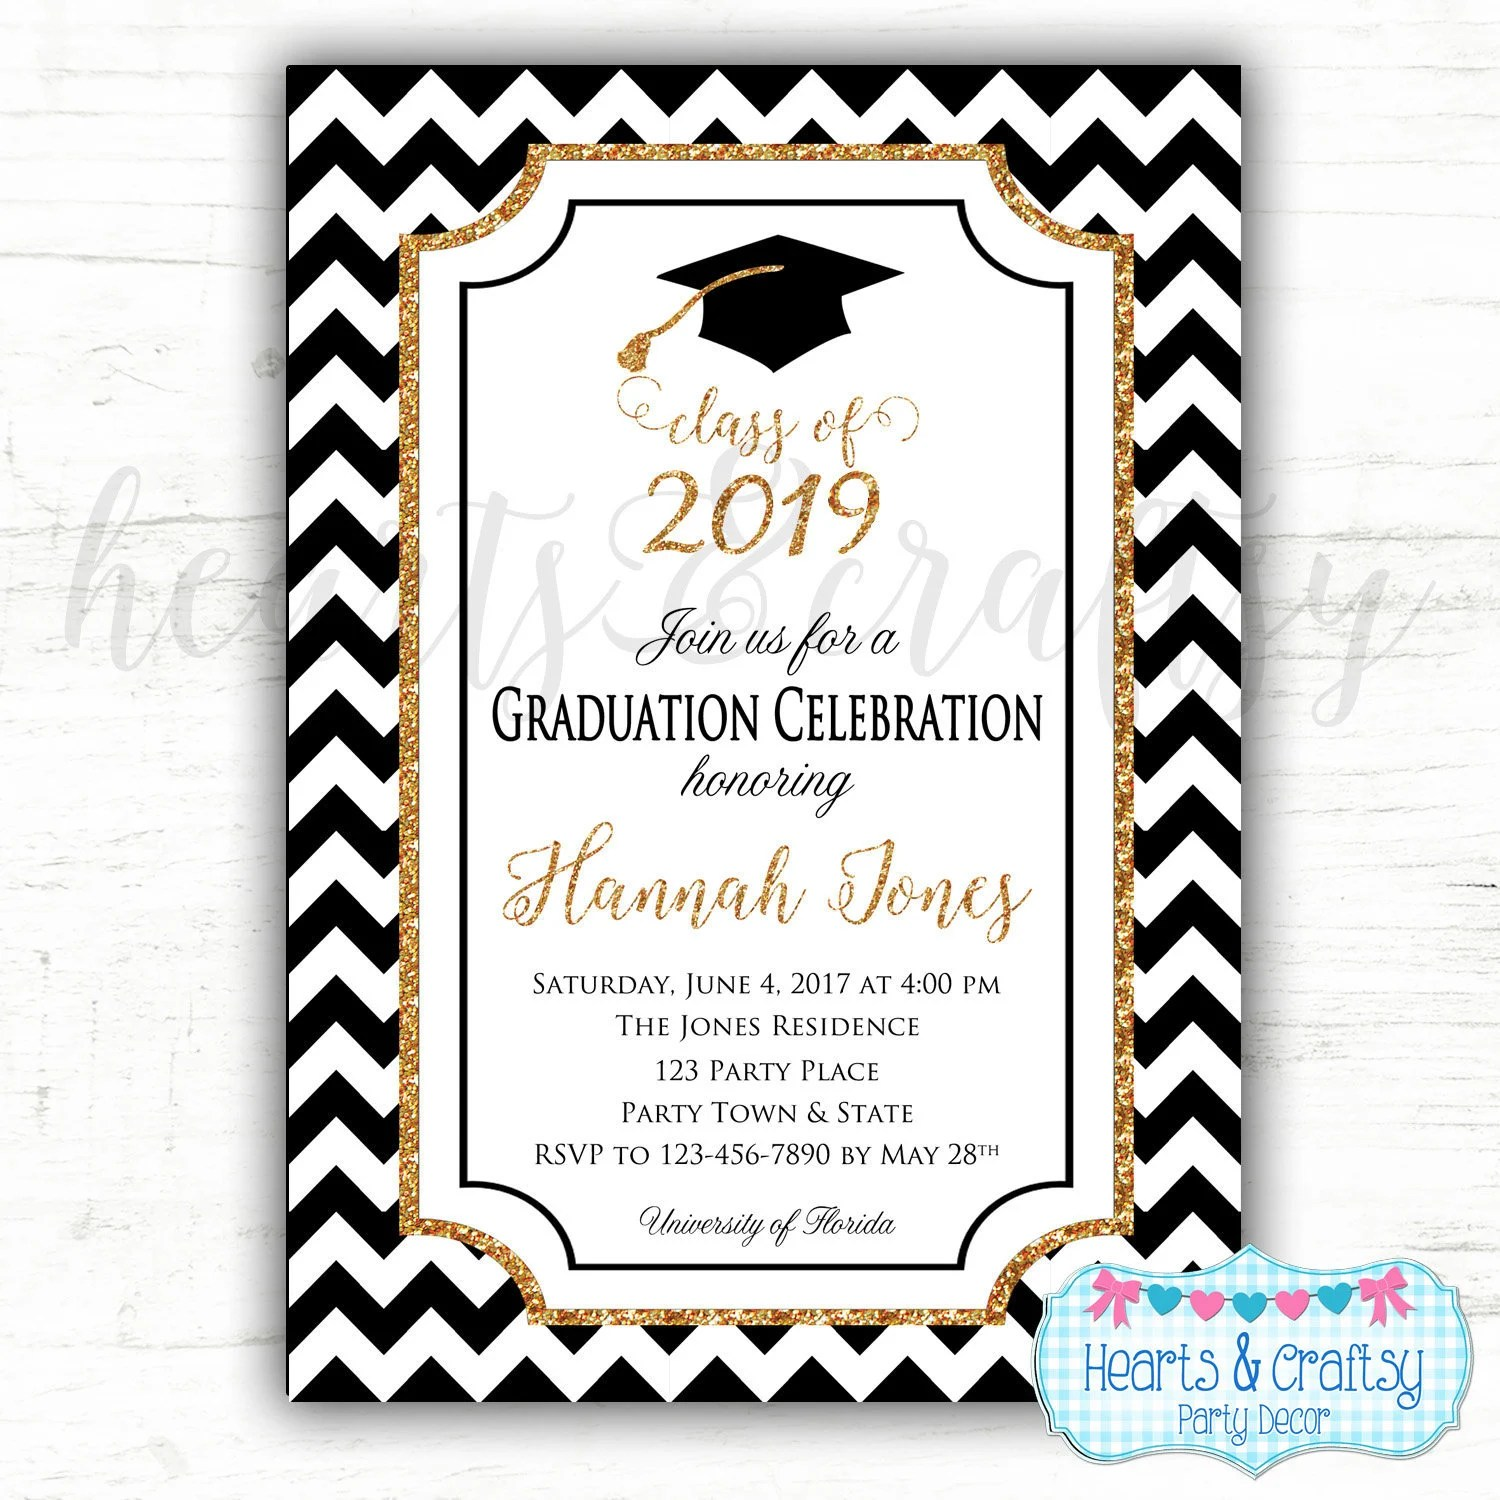 Graduation Party Invitation - College Graduation Invitation - High